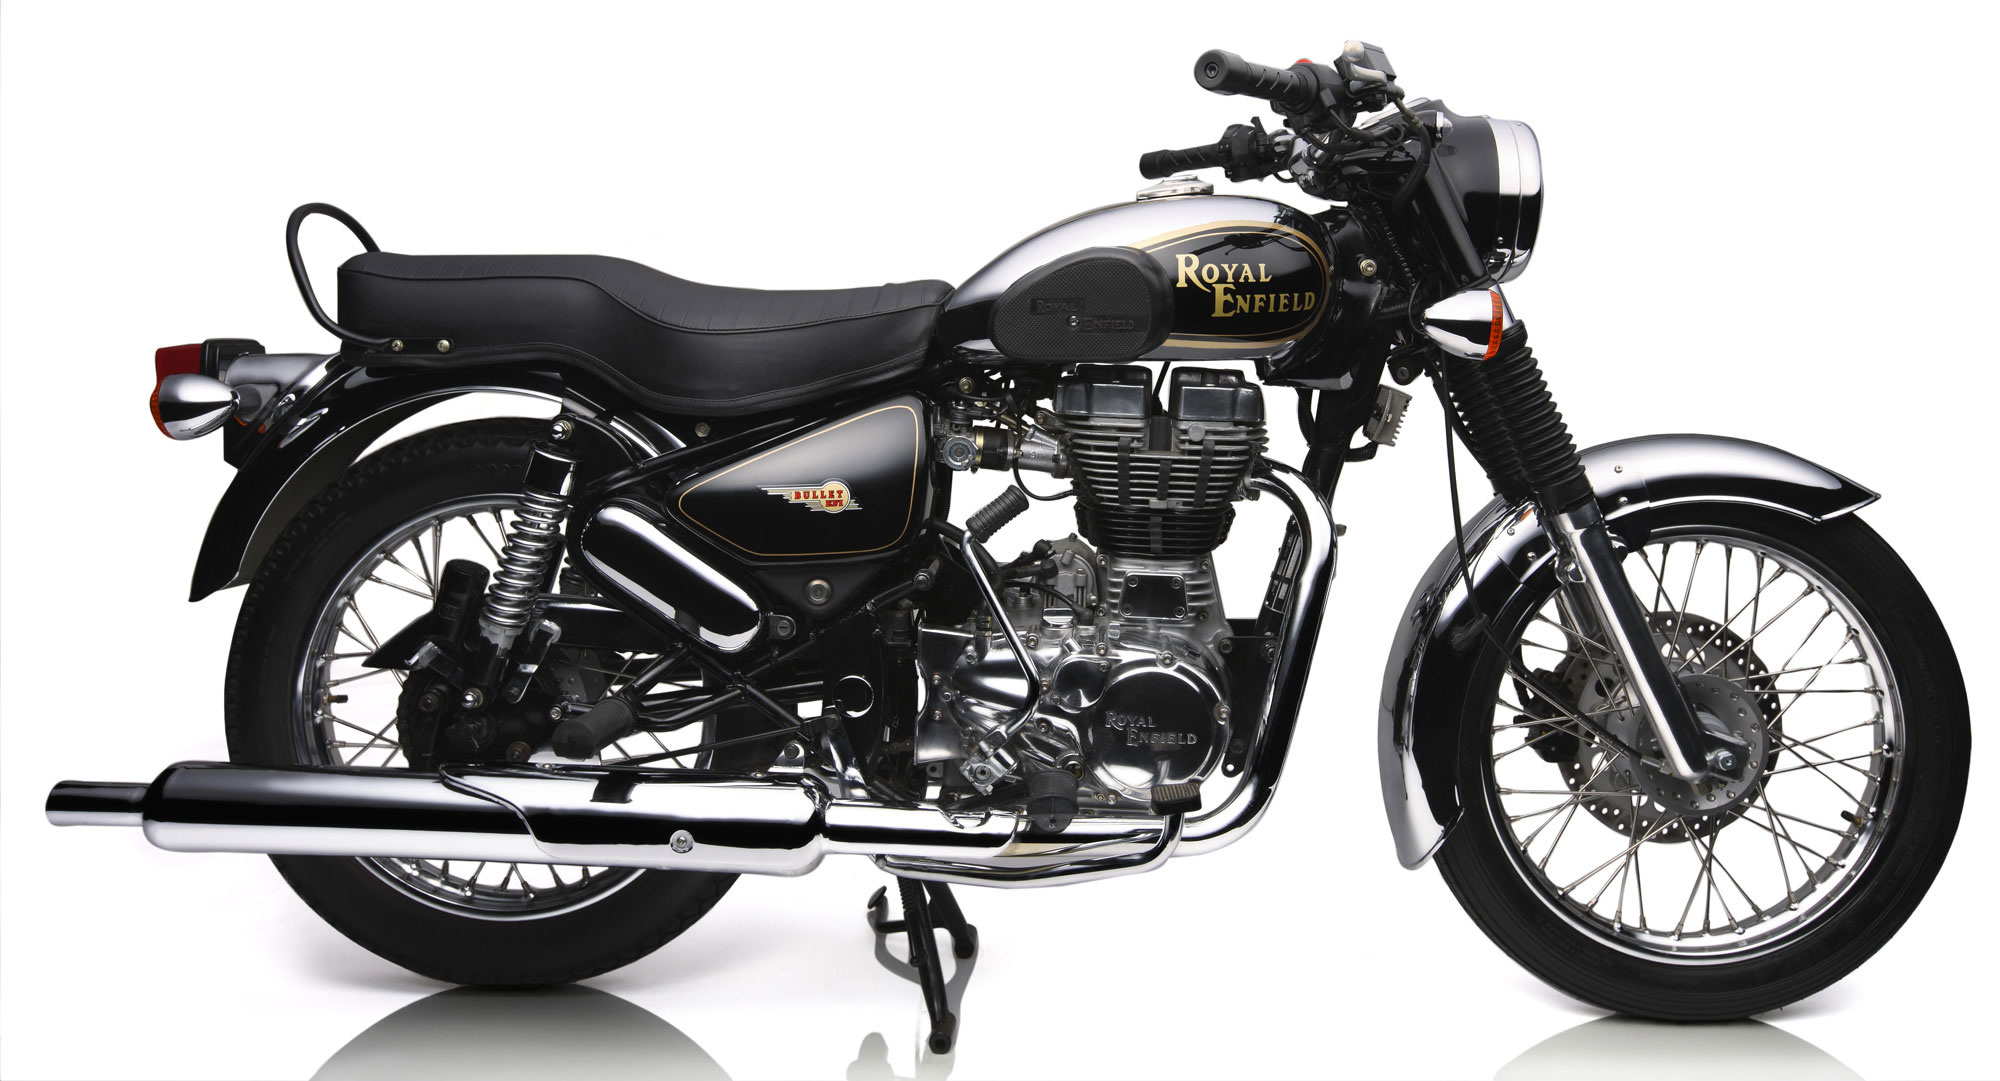 Royal Enfield Bullet 500 Army 2000 images #123249